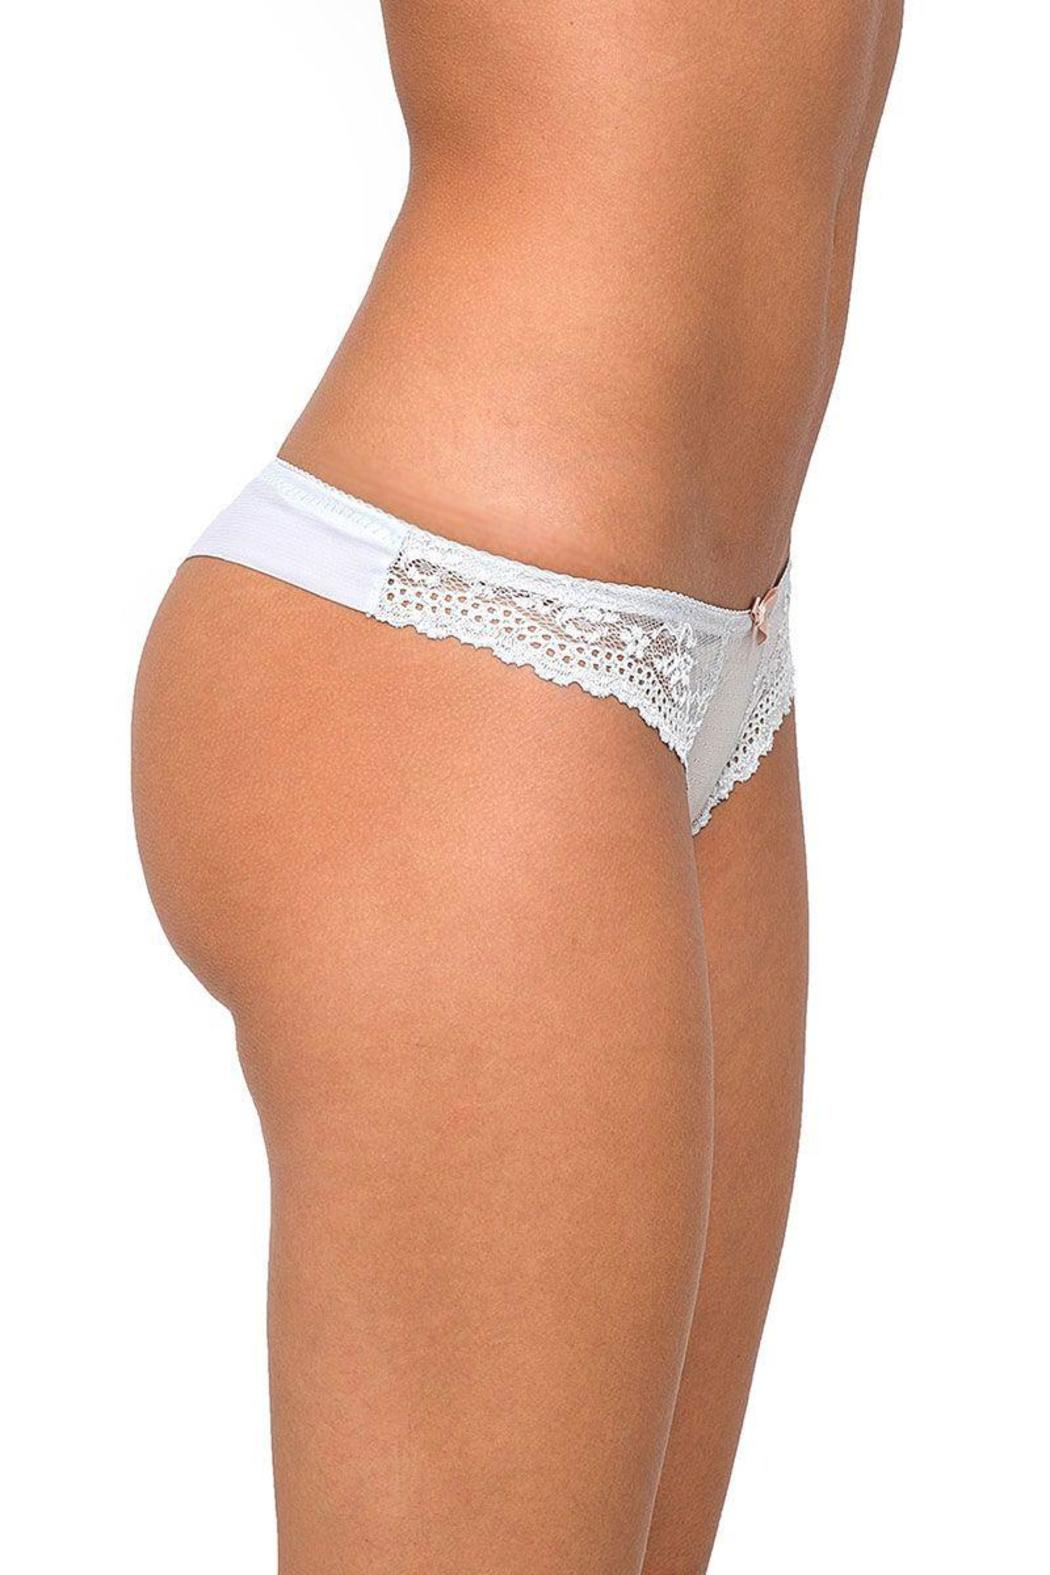 Eberjey Colette Lace Thong - Front Full Image